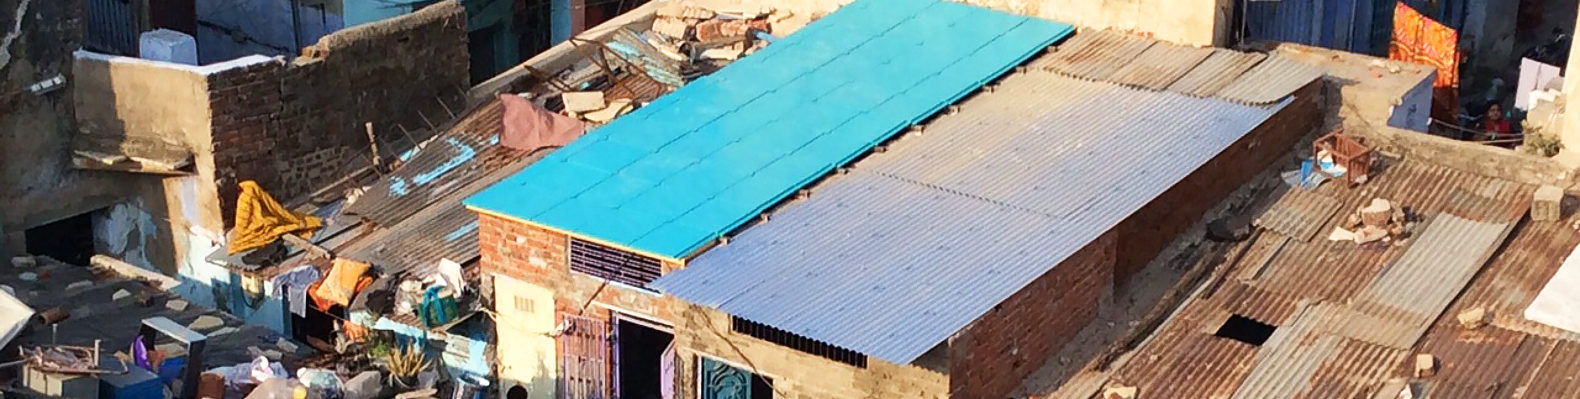 Modroof: Low Budget Cardboard Roofing That Doesnu0027t Leak During Monsoon  Season | Inhabitat   Green Design, Innovation, Architecture, Green Building